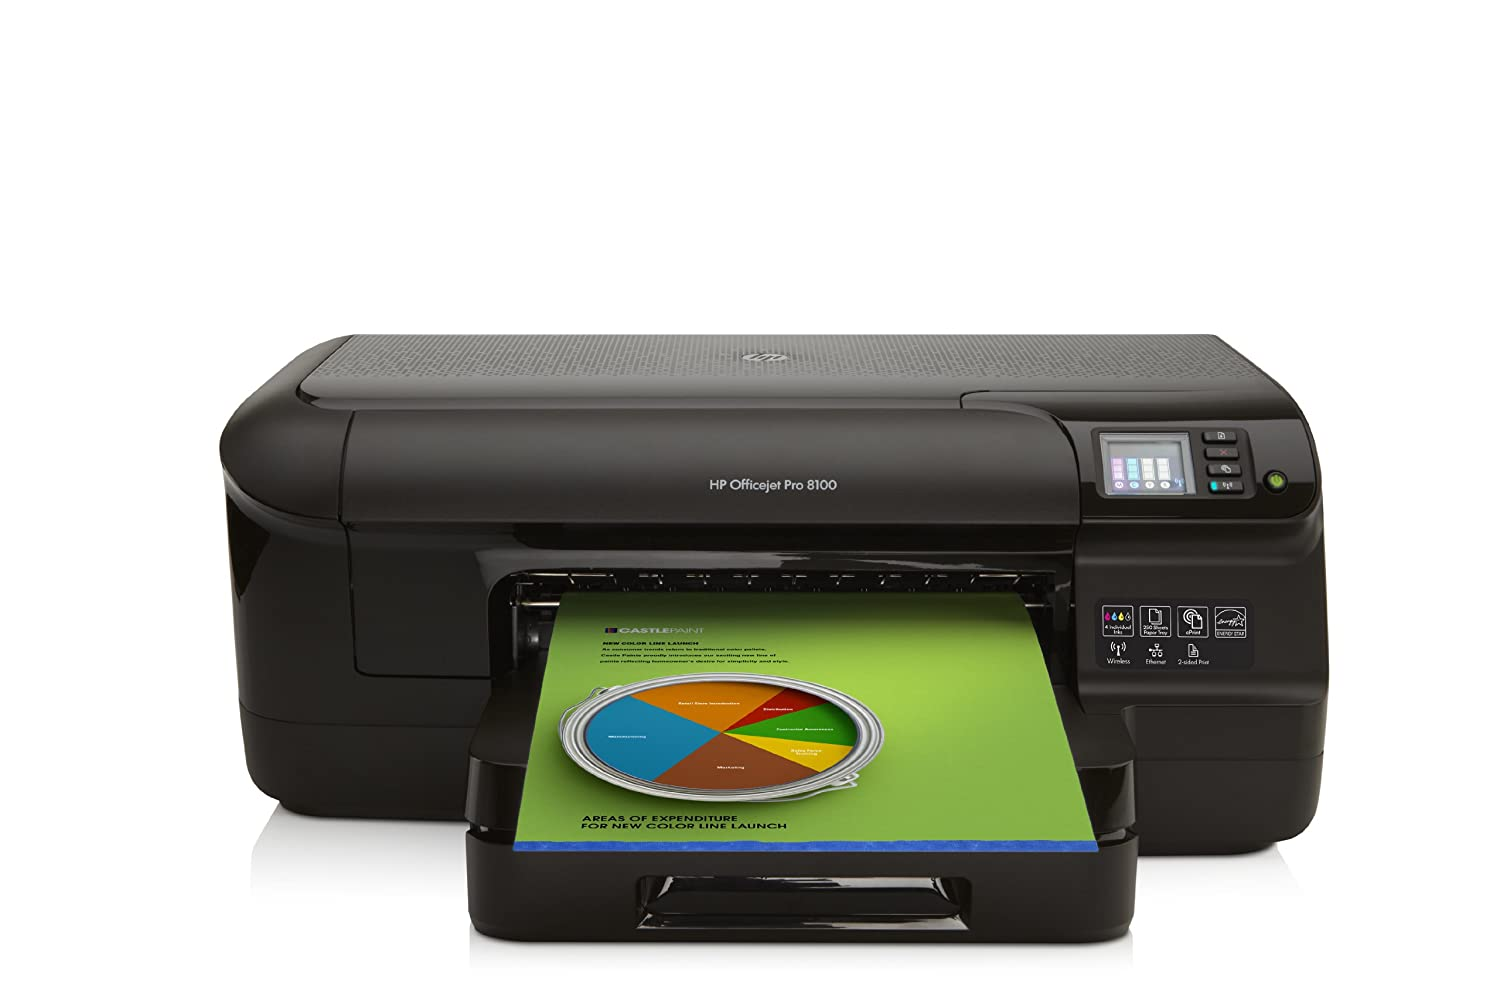 HP Officejet Pro 8100 - Impresora de tinta (B/N 35 PPM), color negro